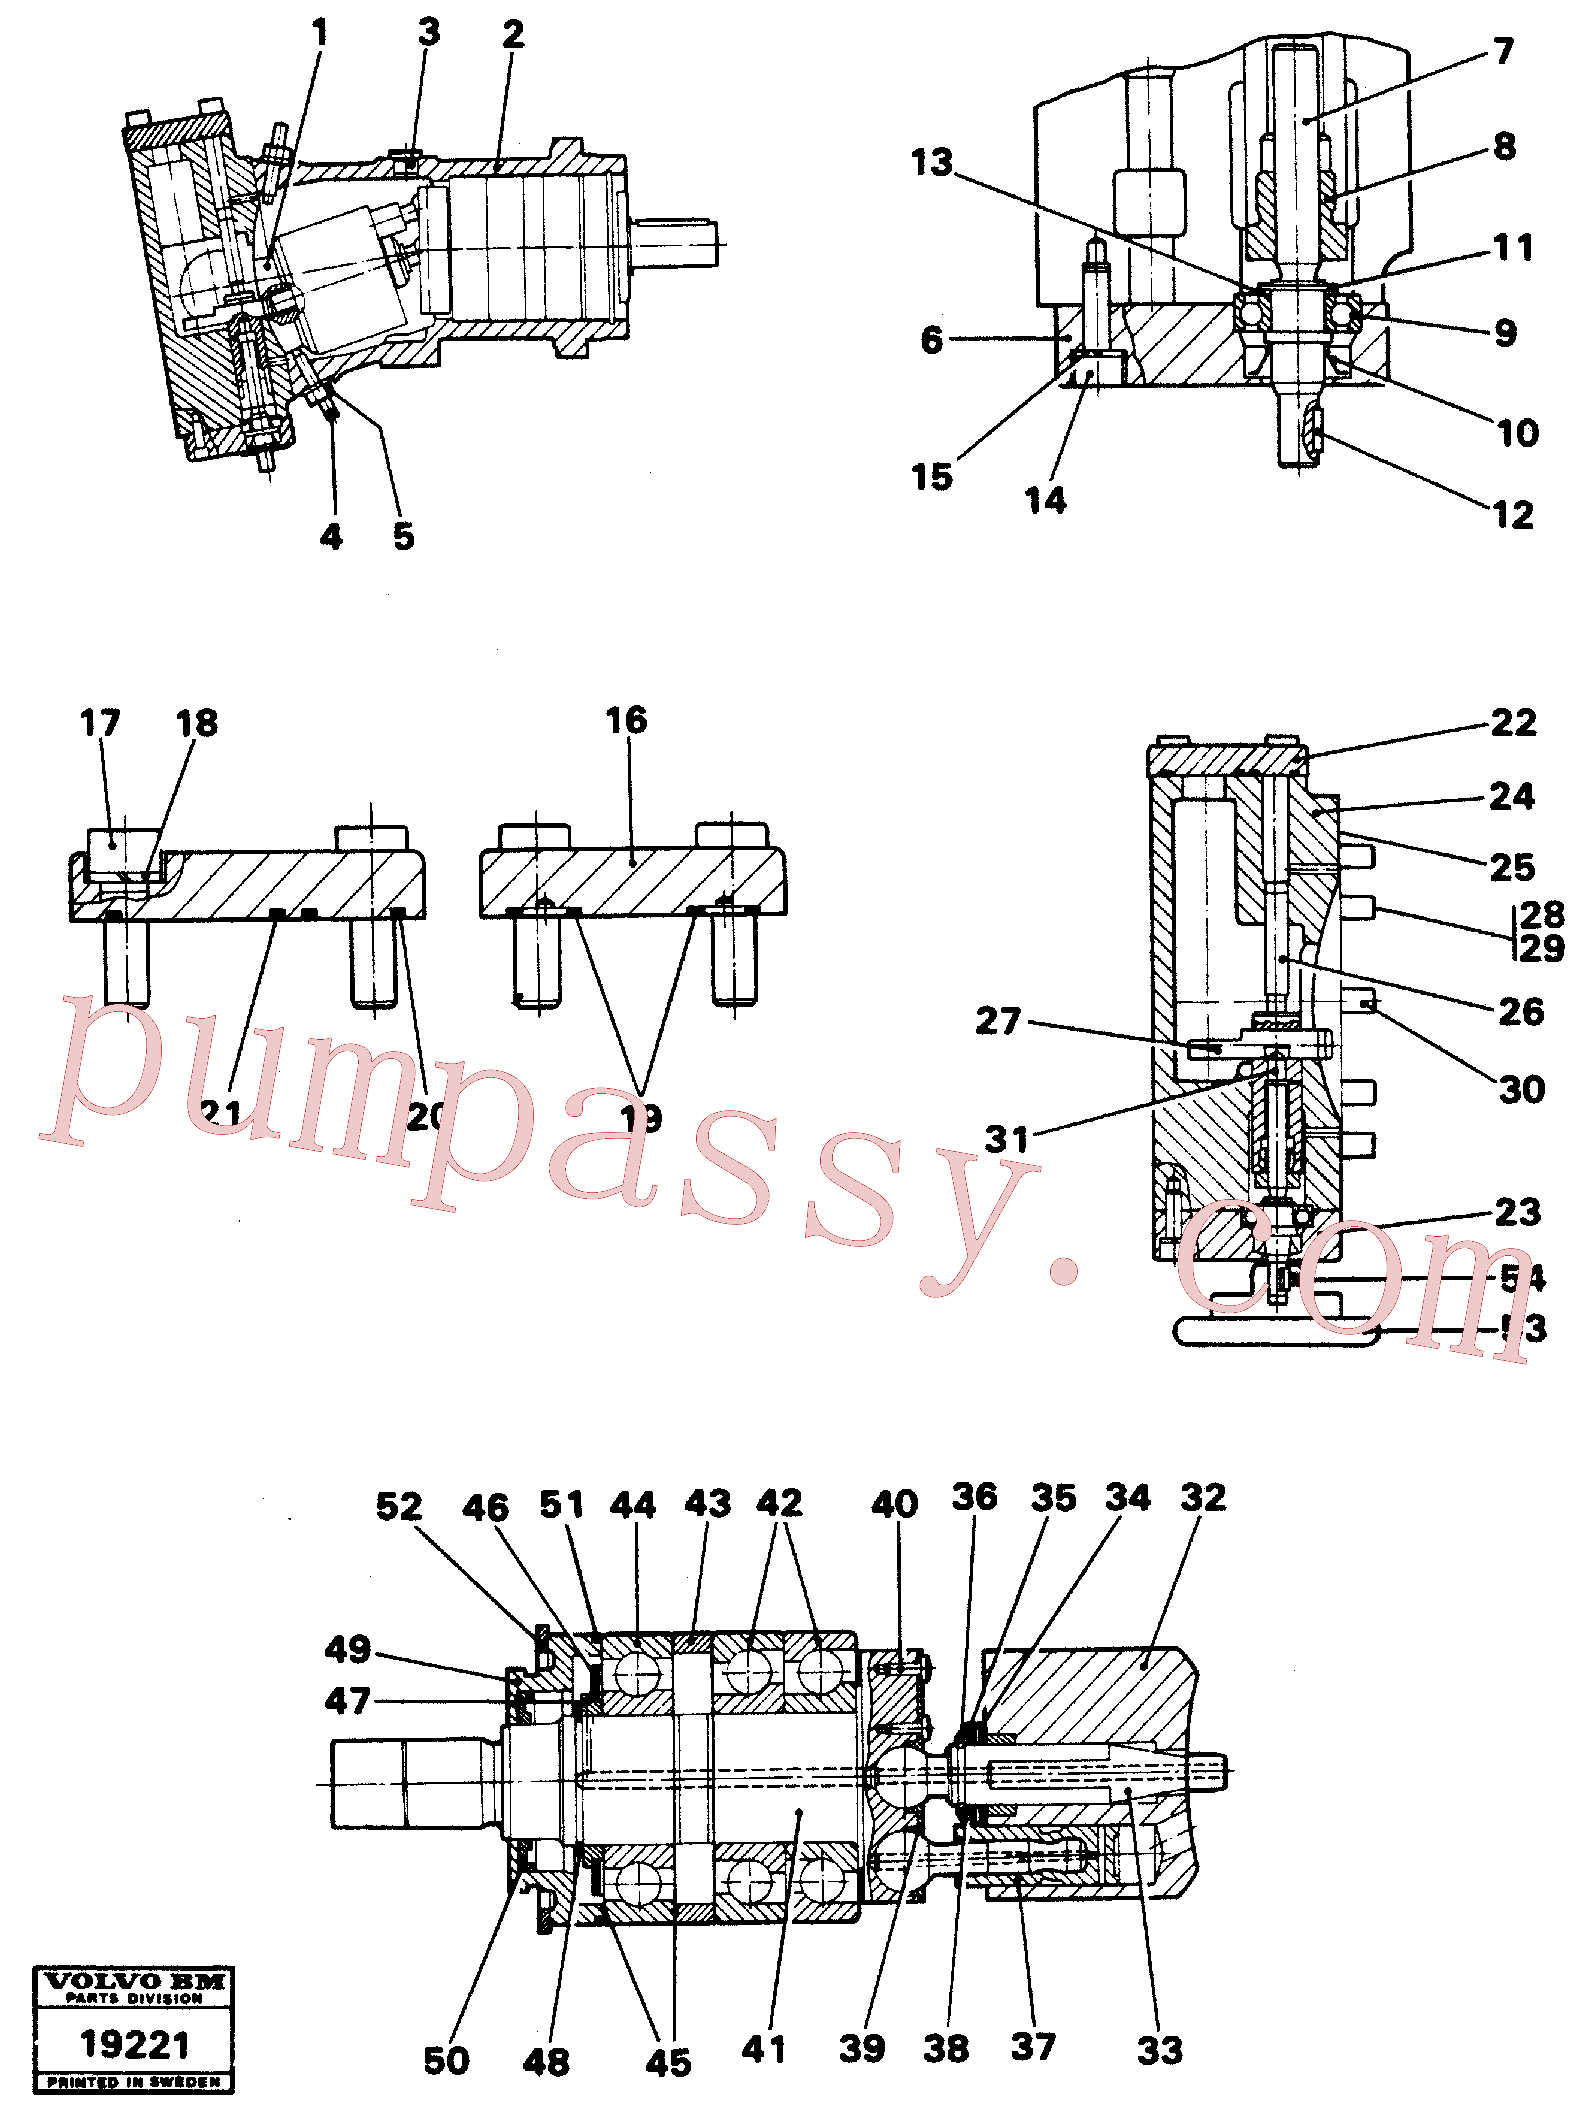 RM96711346 for Volvo Hydraulic pump(19221 assembly)